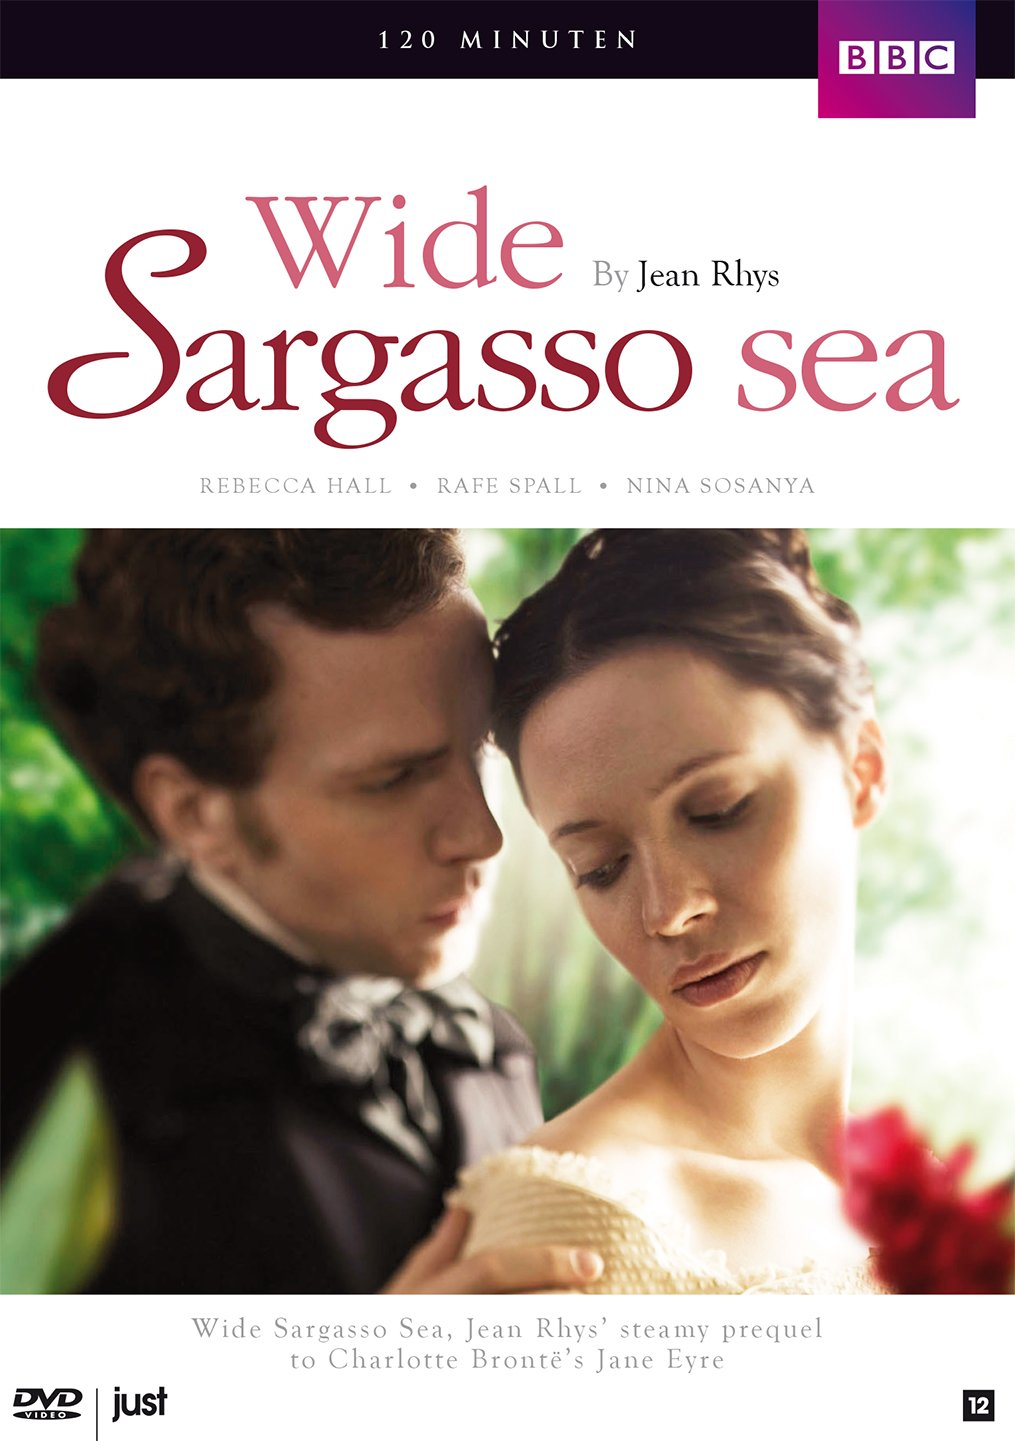 jean rhys wide sargasso sea readers guides to essential dvd wide sargasso sea bbc region 2 english audio